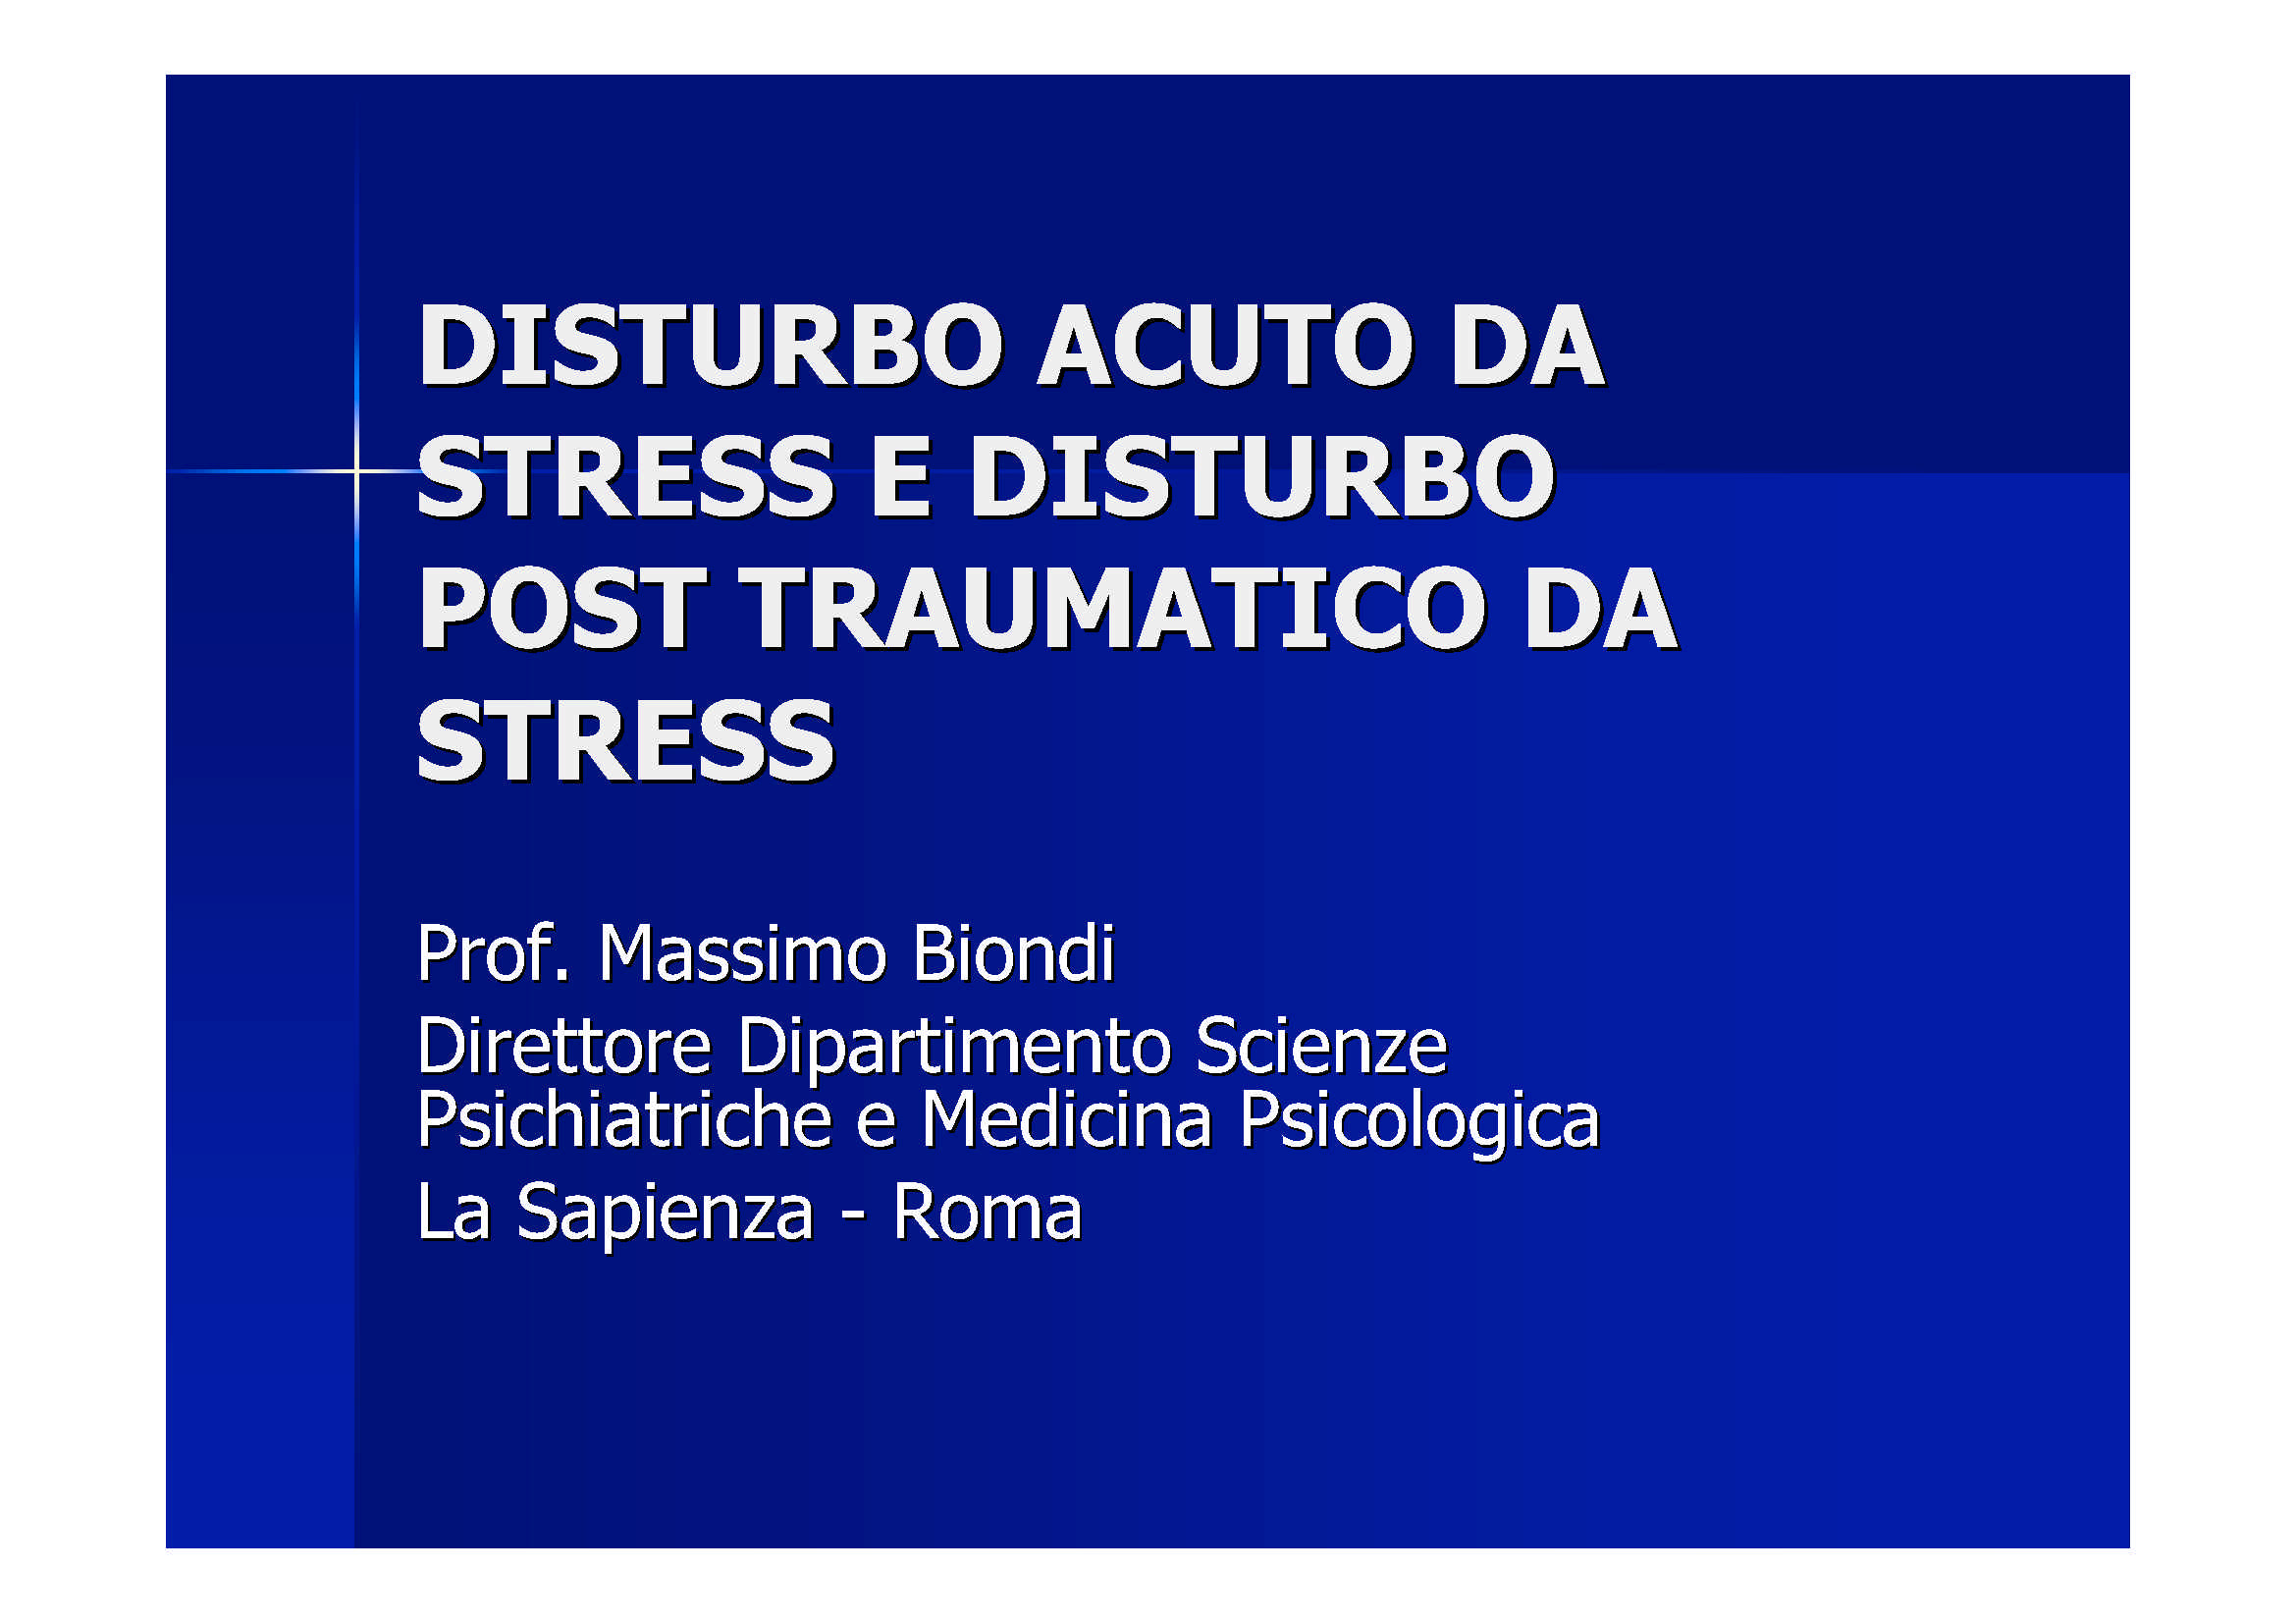 Disturbo da stress post traumatico